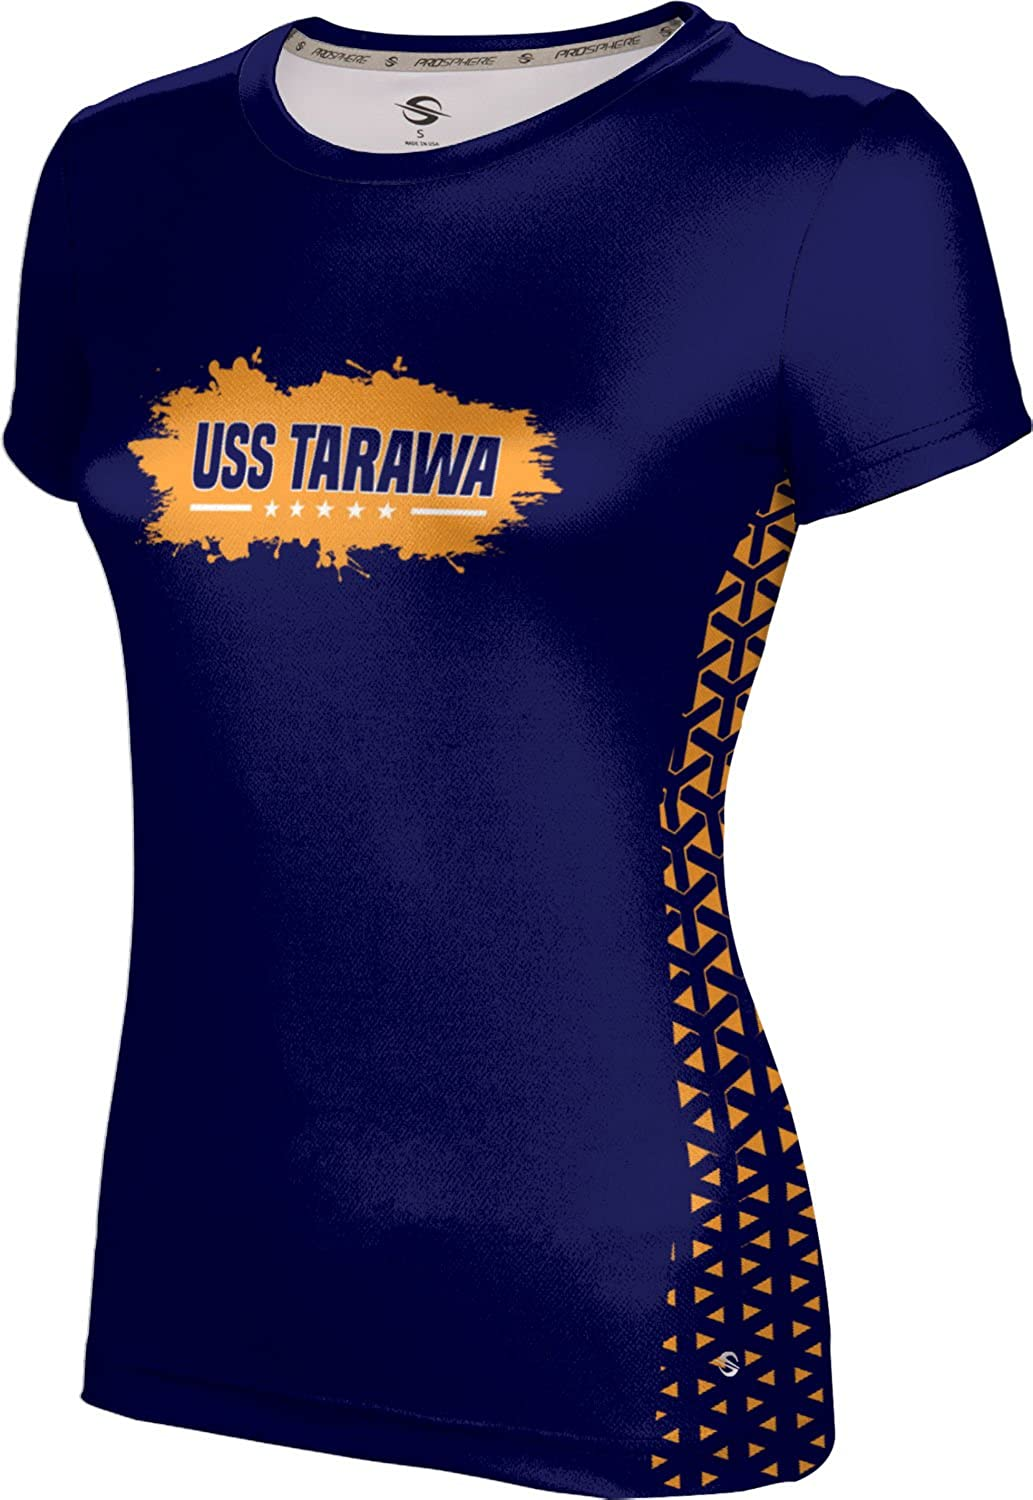 ProSphere Women's USS Tarawa Military Geometric Tech Tee